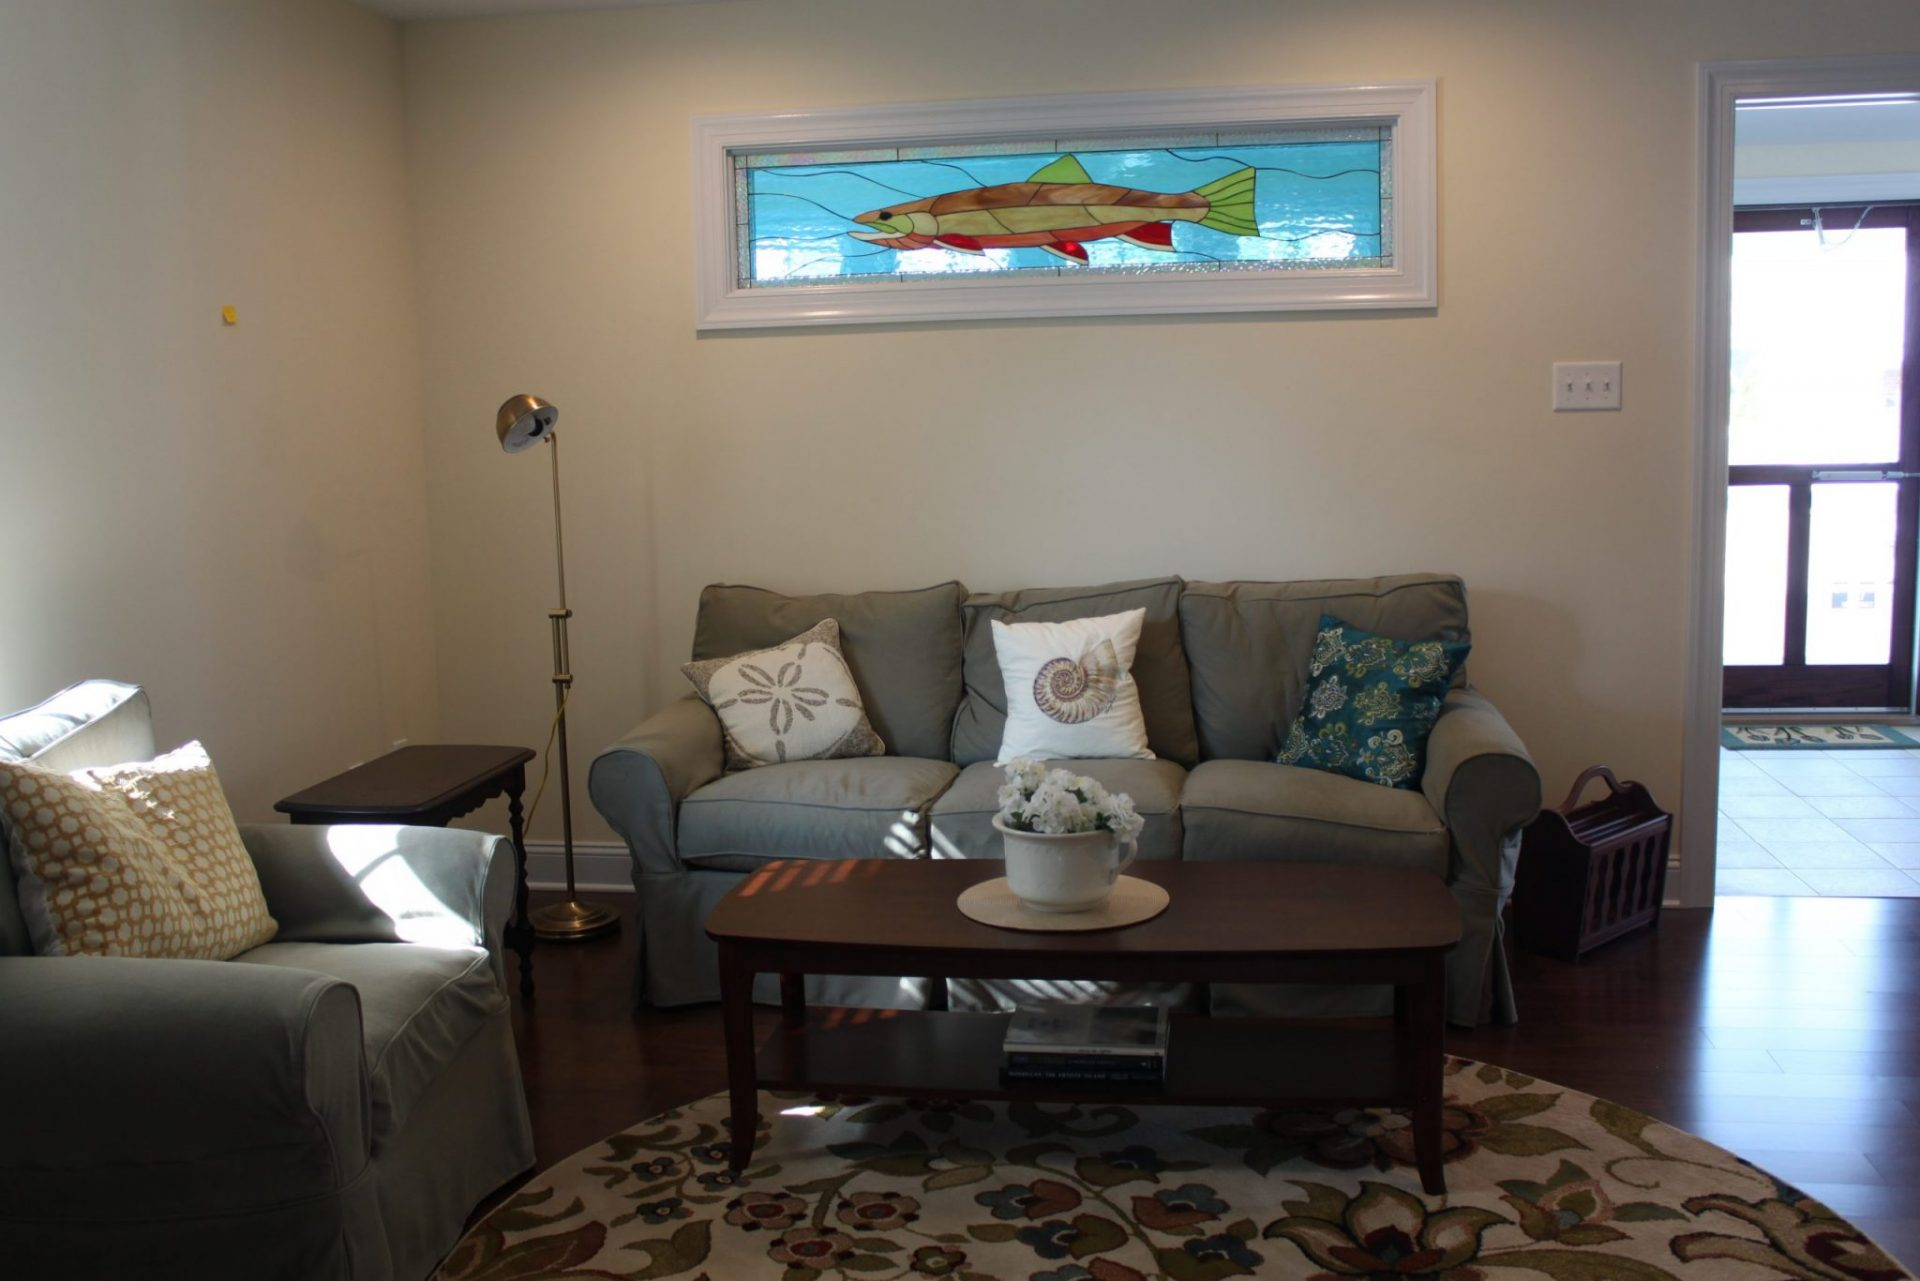 Salmon Stained Glass Window Partition